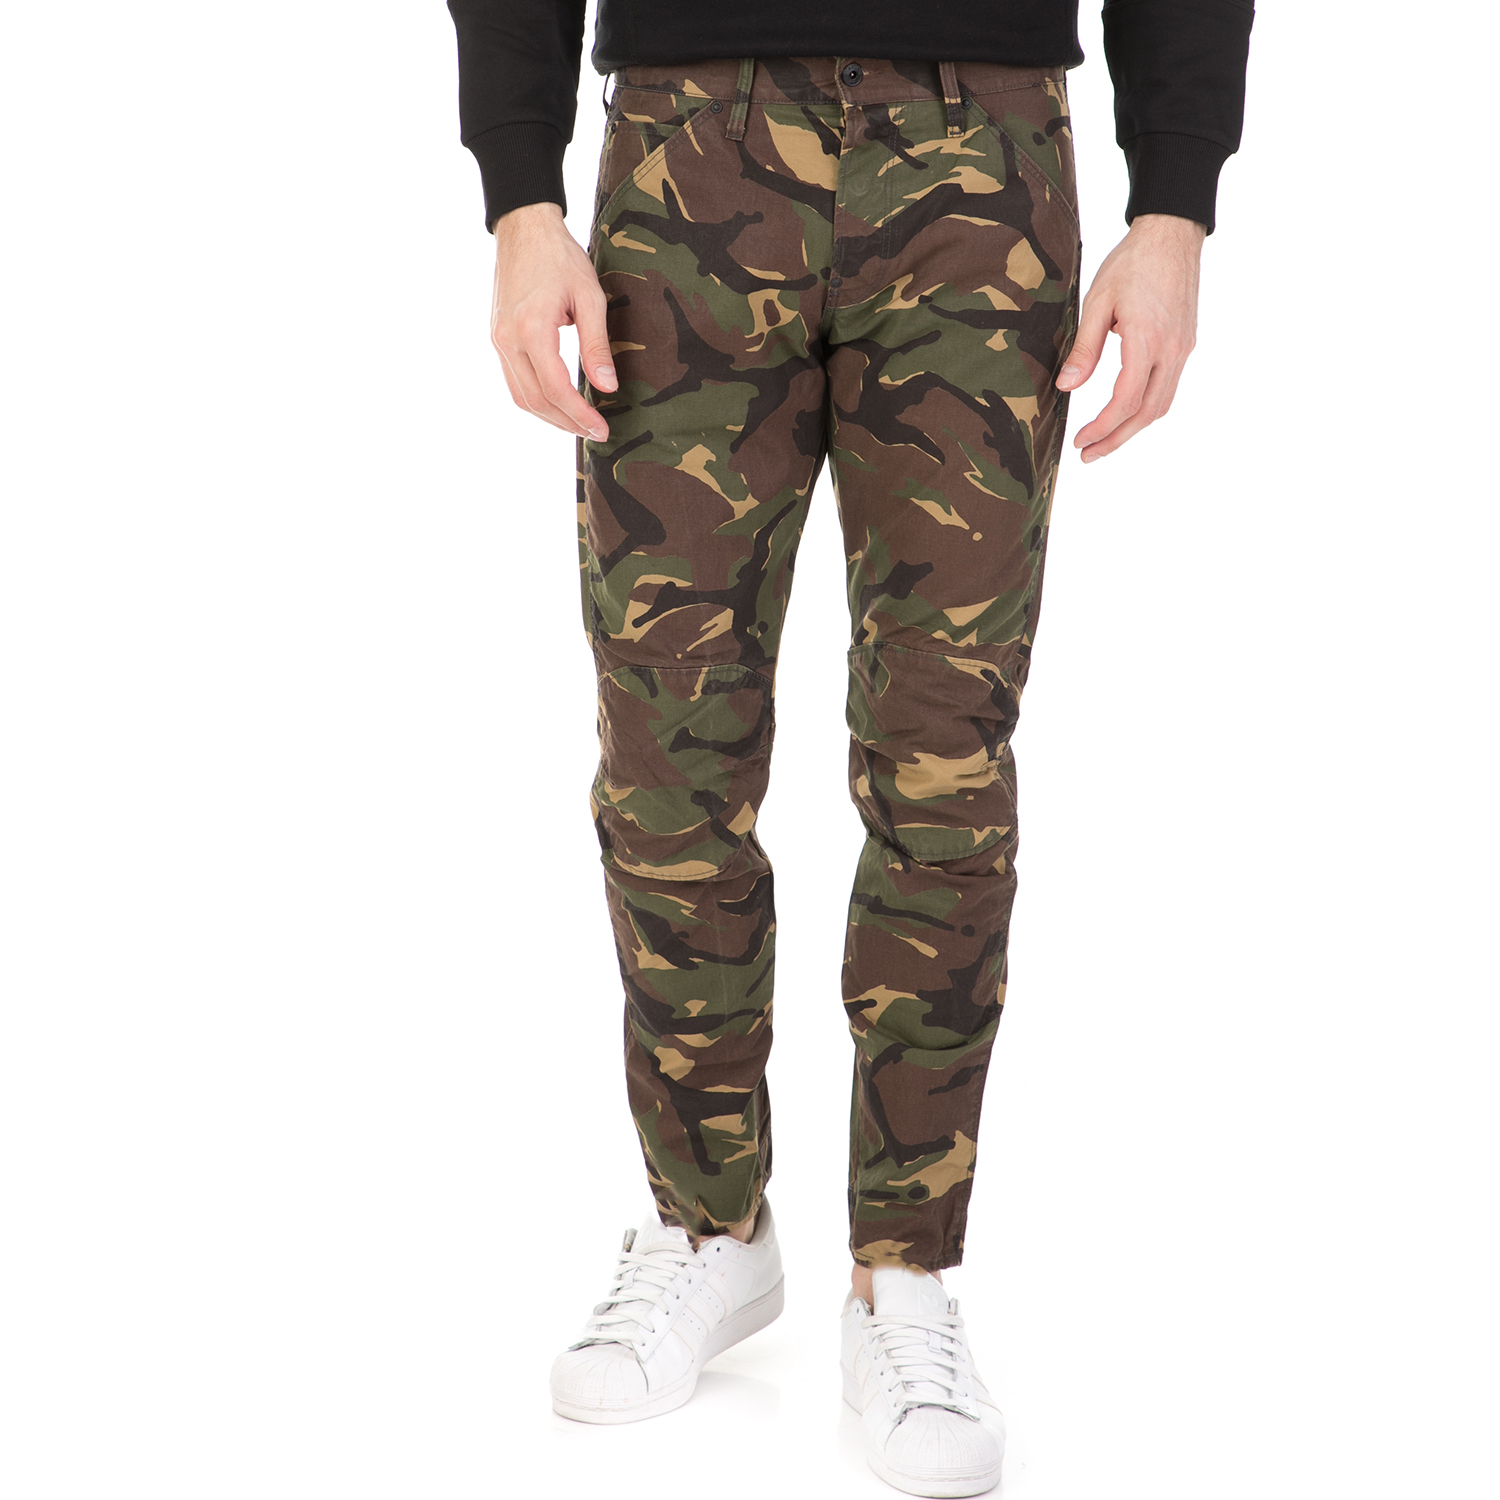 G-STAR RAW - Ανδρικό παντελόνι G-STAR RAW 5622 3D Tapered χακί